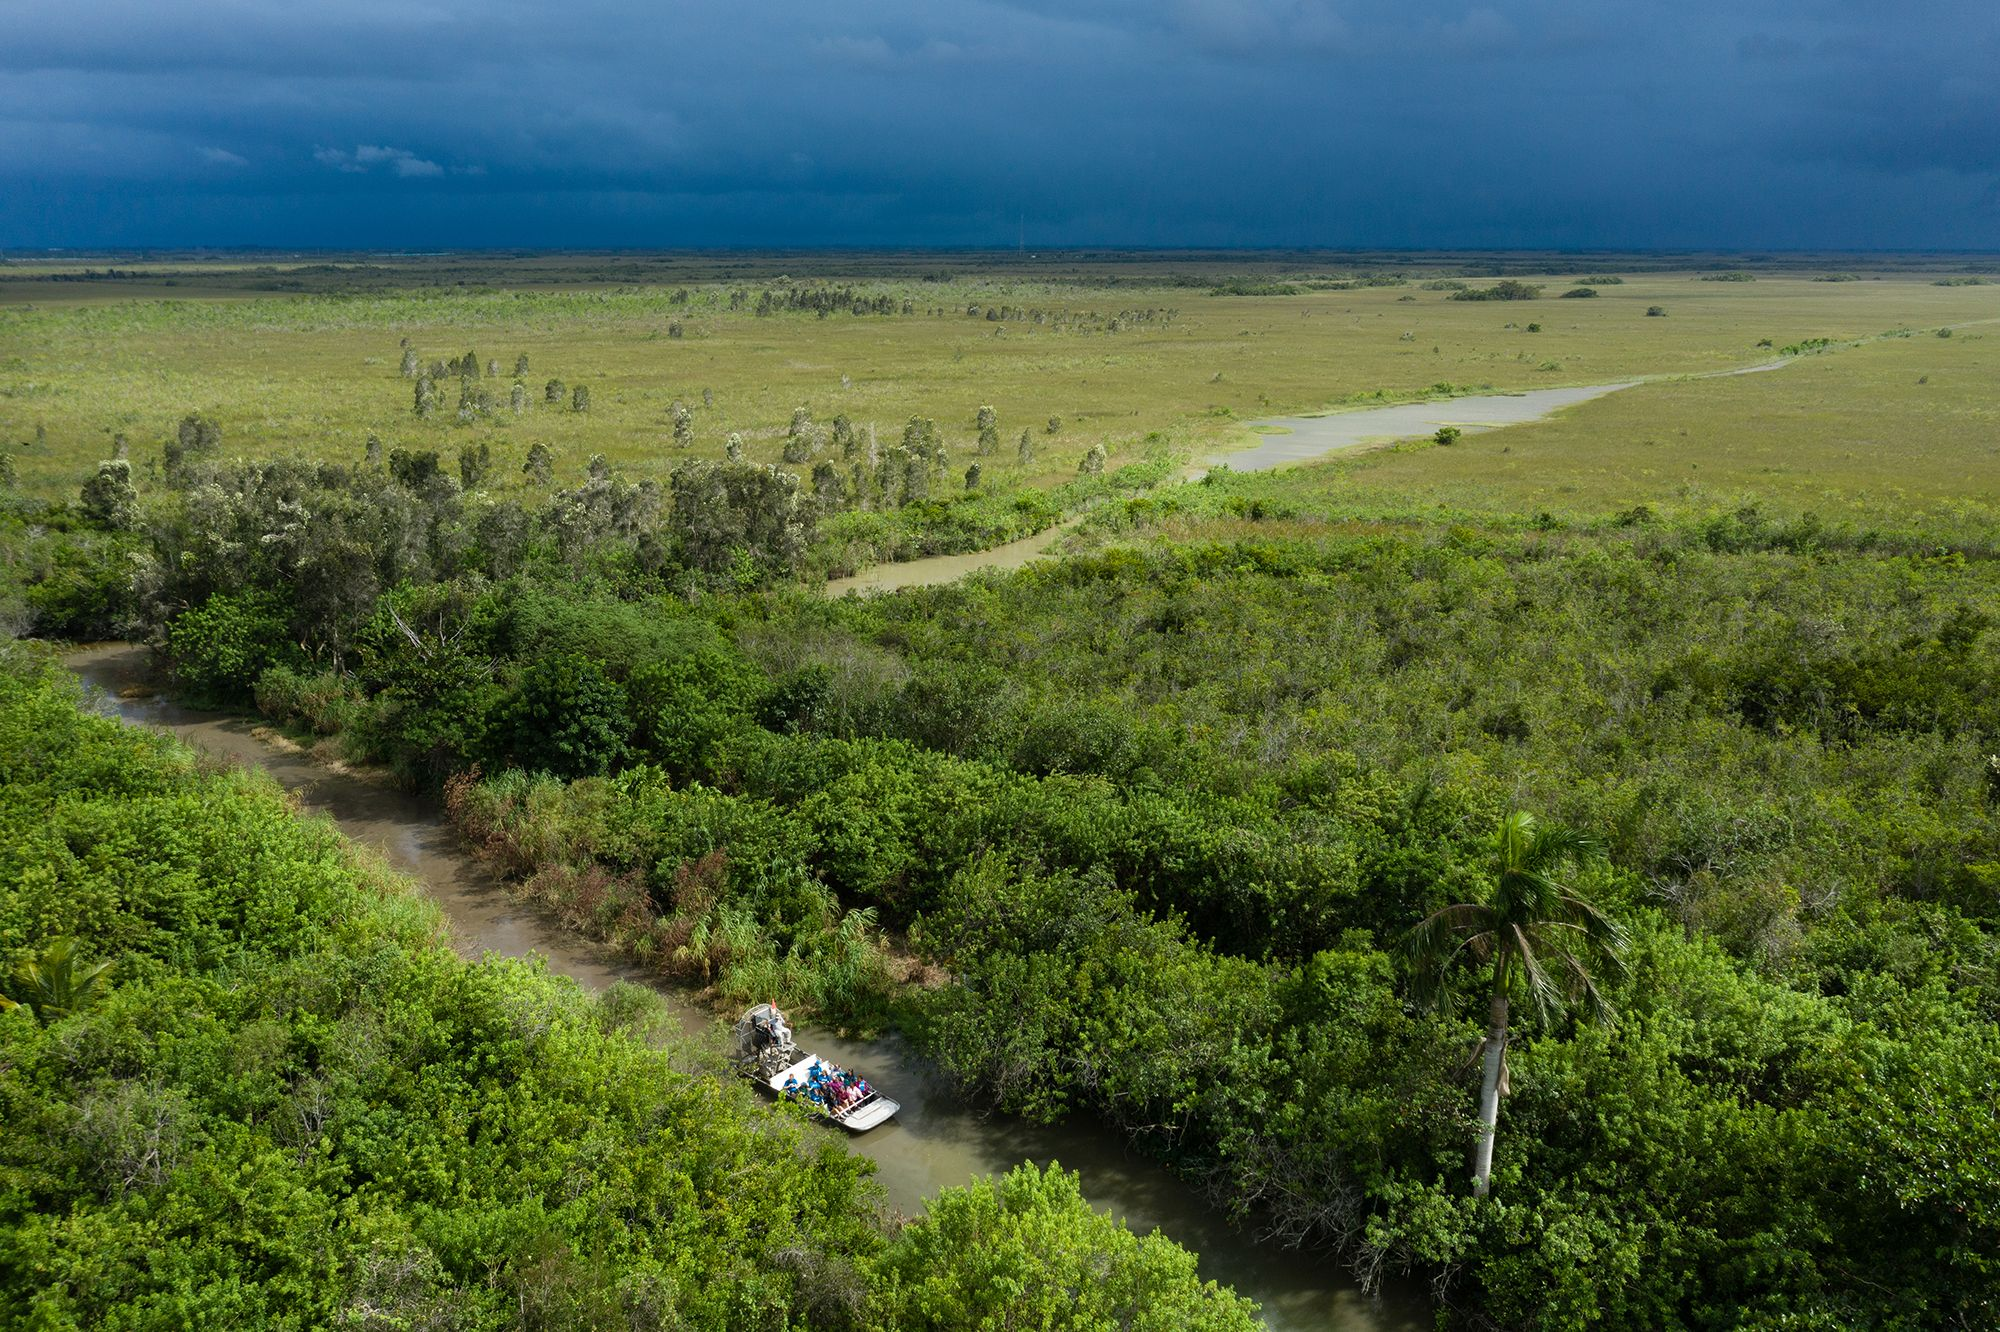 An aerial view of an air boat full of students crossing wetlands in the Everglades.